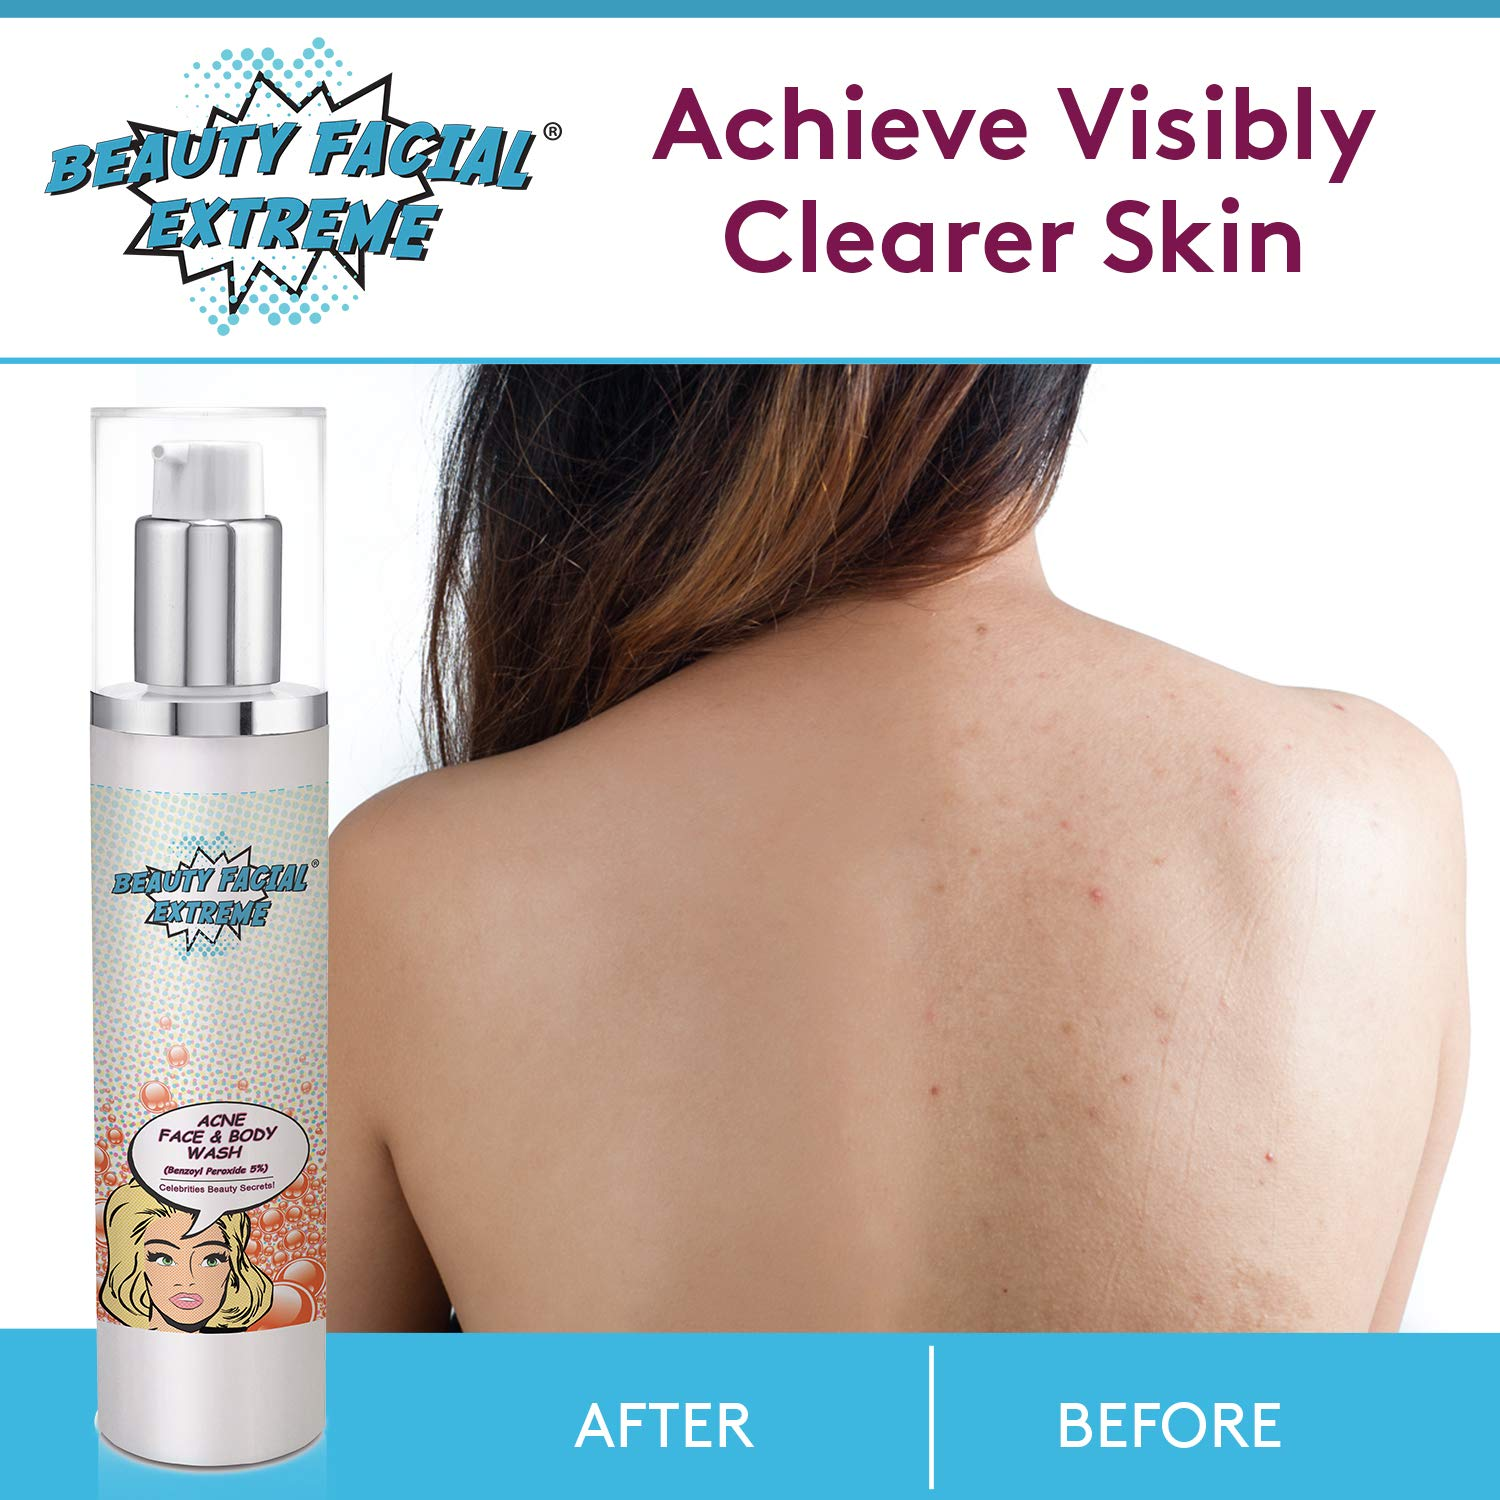 Benzoyl Peroxide 5% Acne Cleanser- Clinically Proven Wash to Fight Acne  Bacteria on Contact